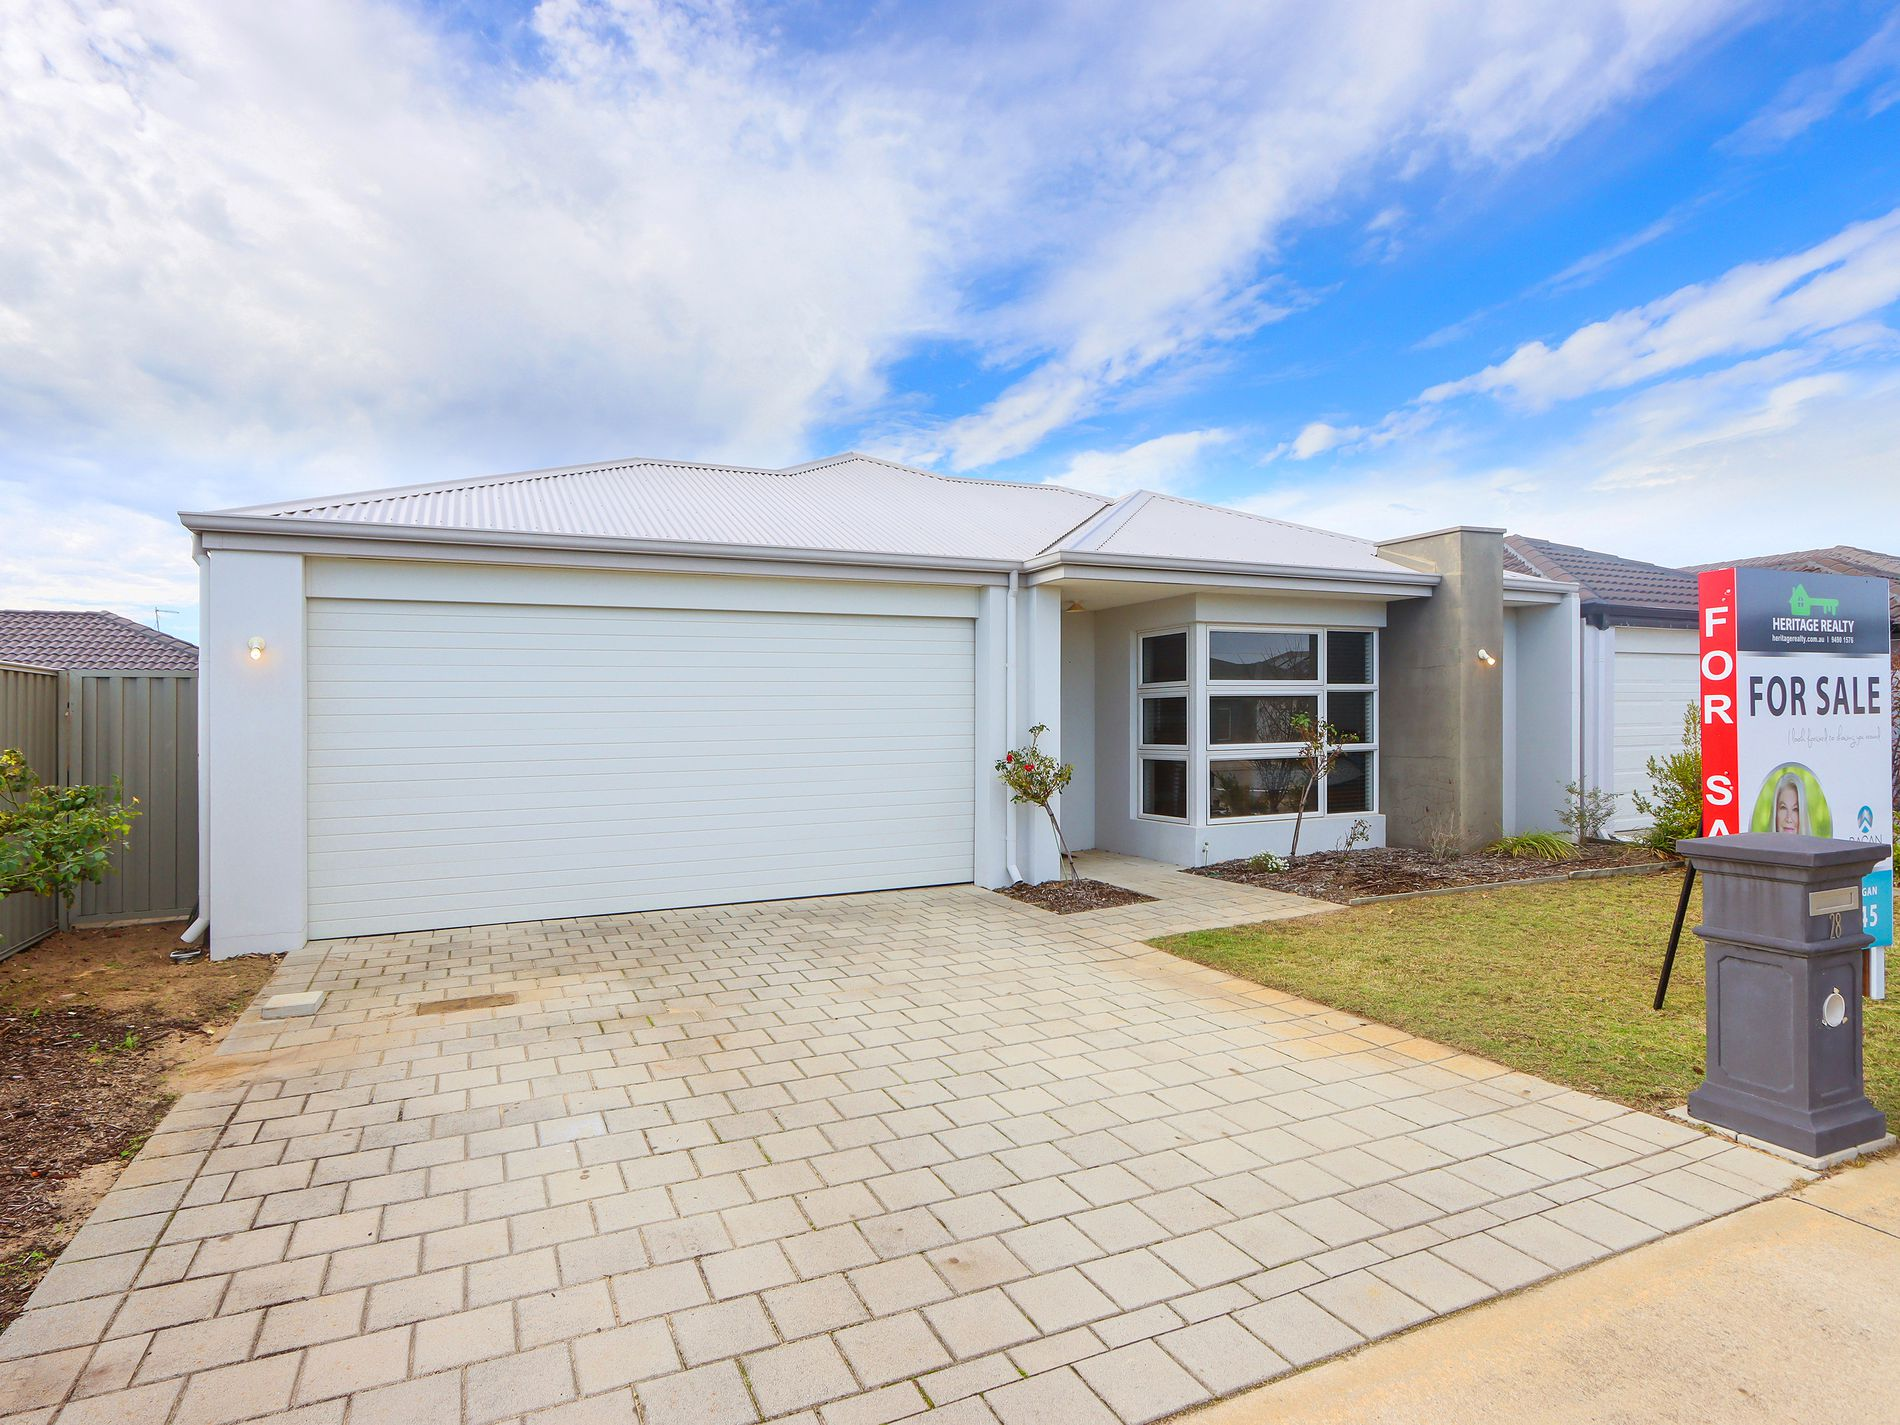 28 Rockefeller Way, Harrisdale